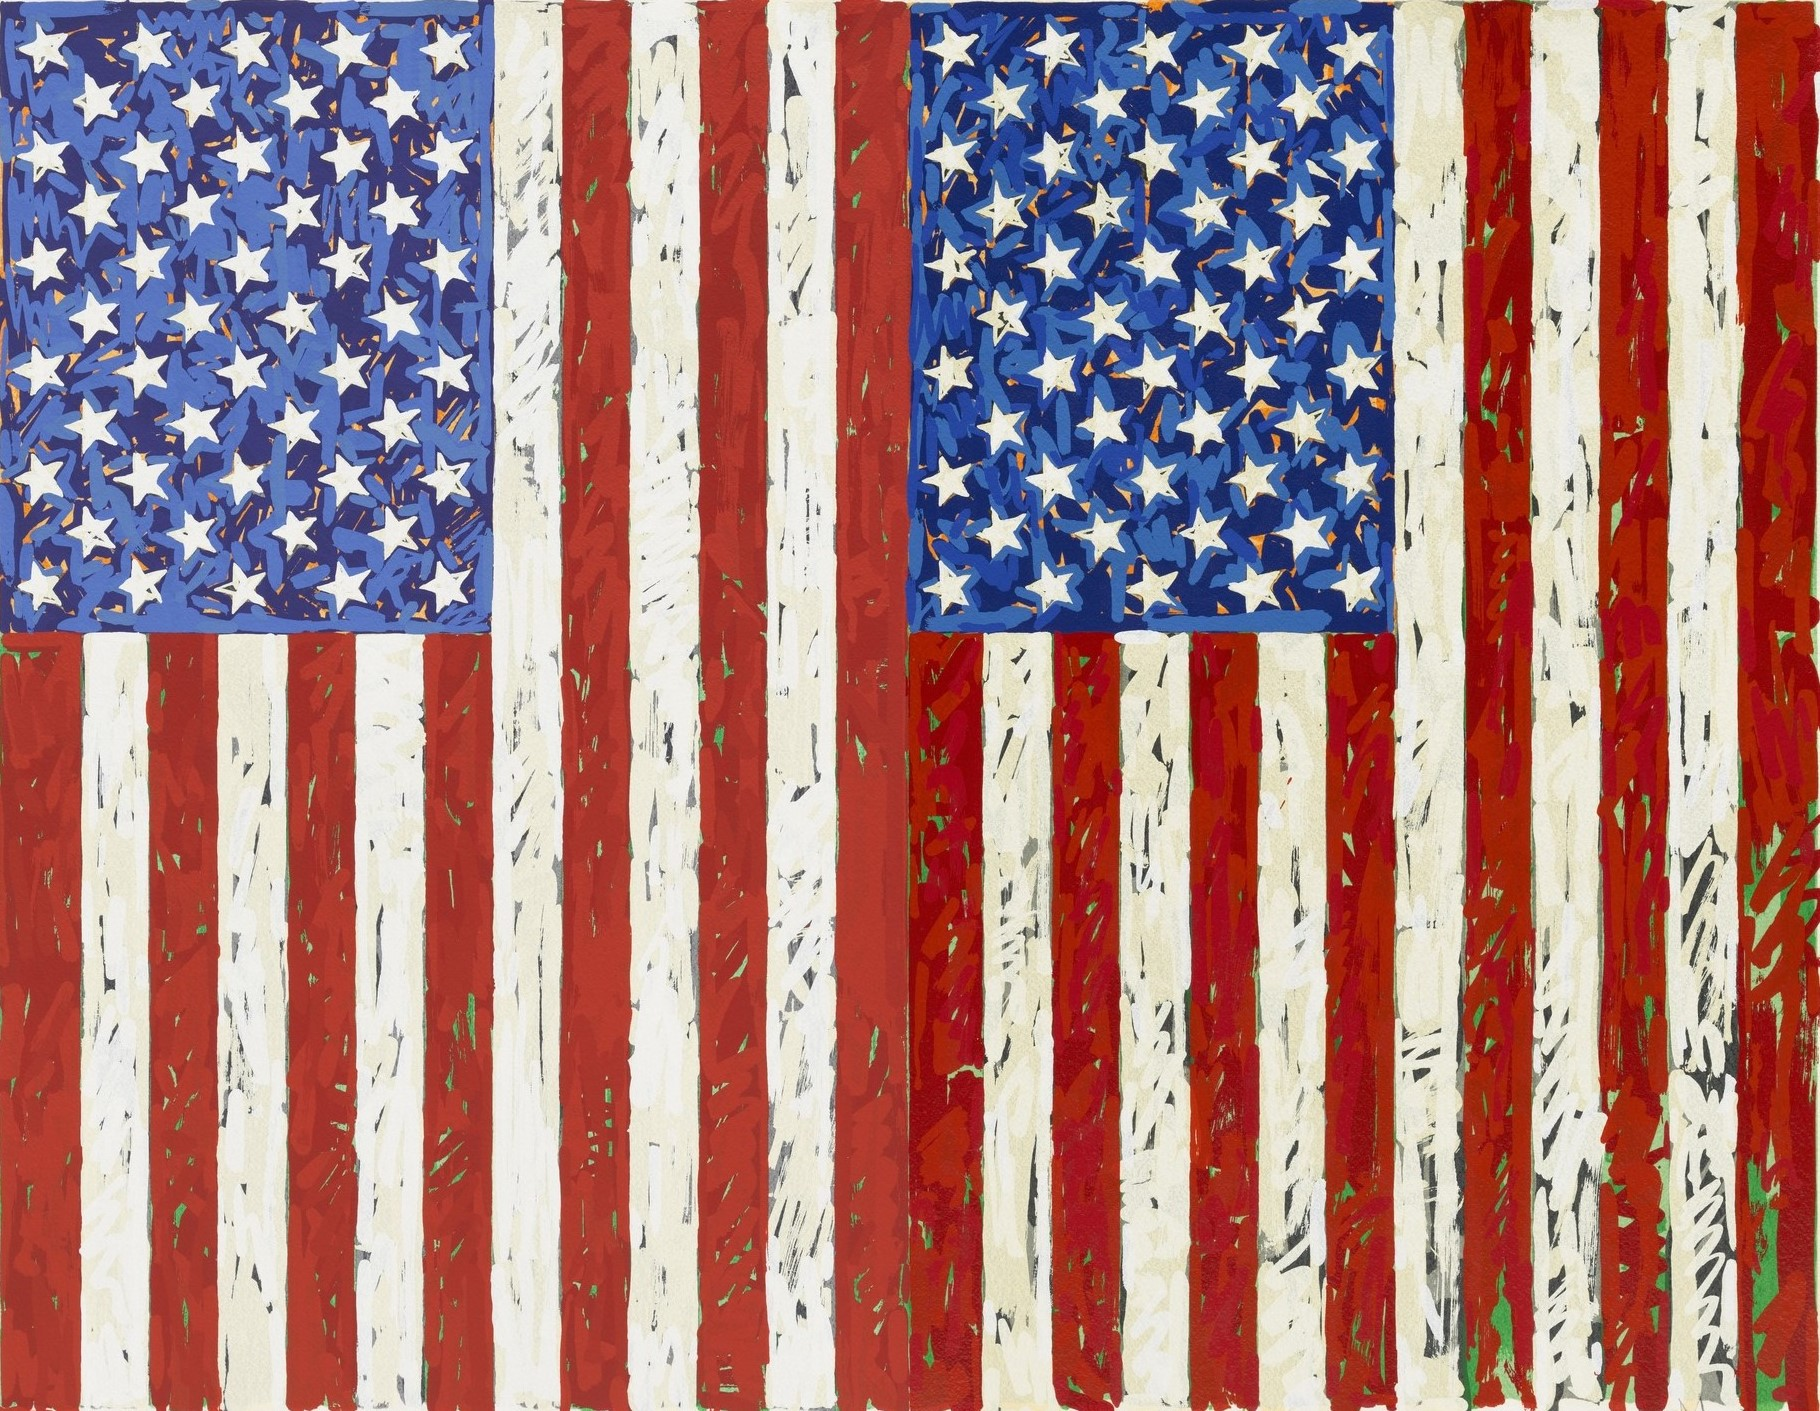 Flags by Jasper Johns